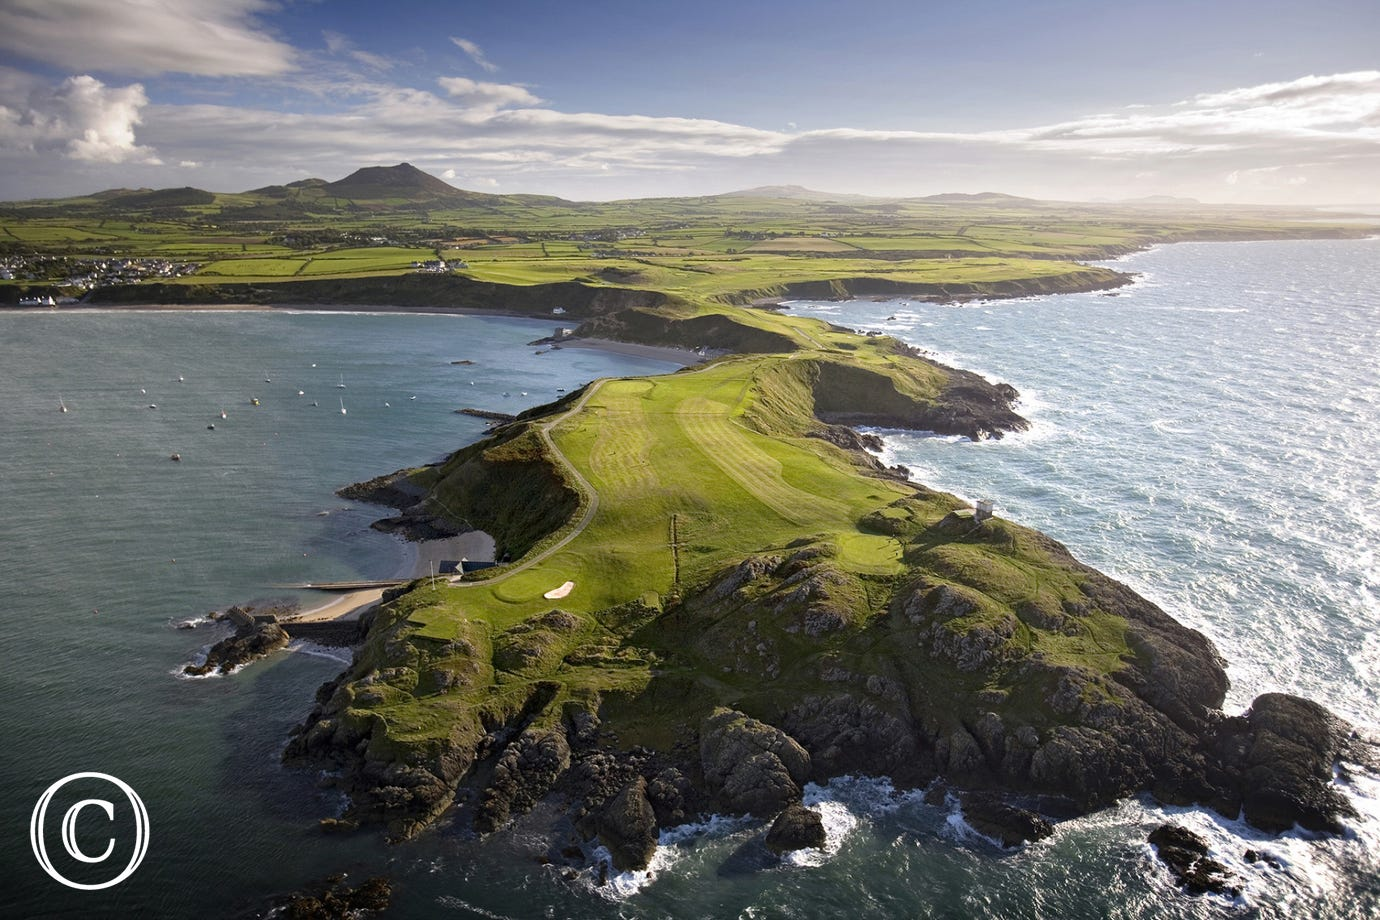 Nefyn and District Golf Course